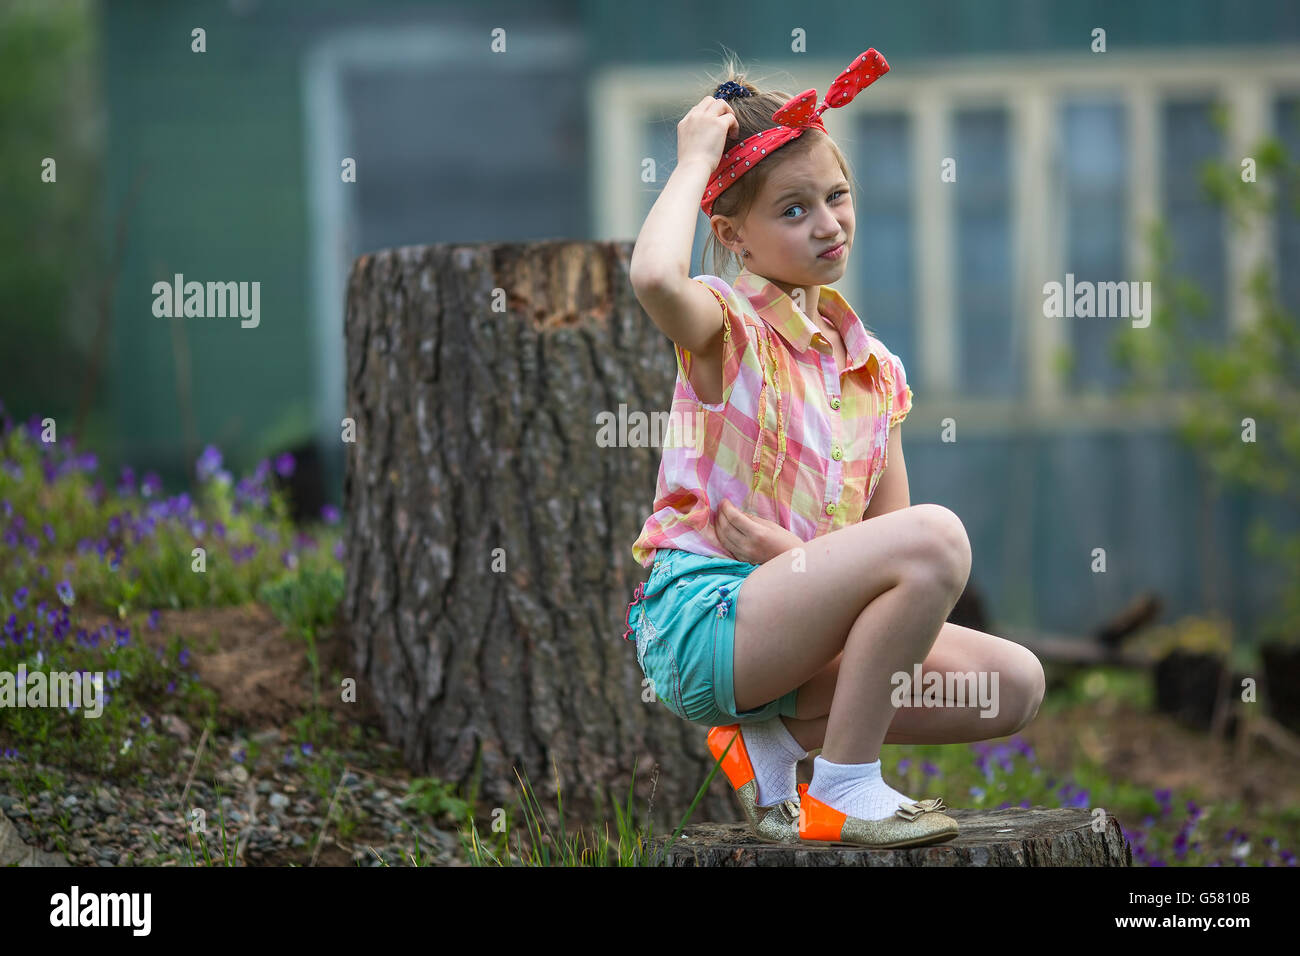 Puzzled little girl sitting near farm house. - Stock Image